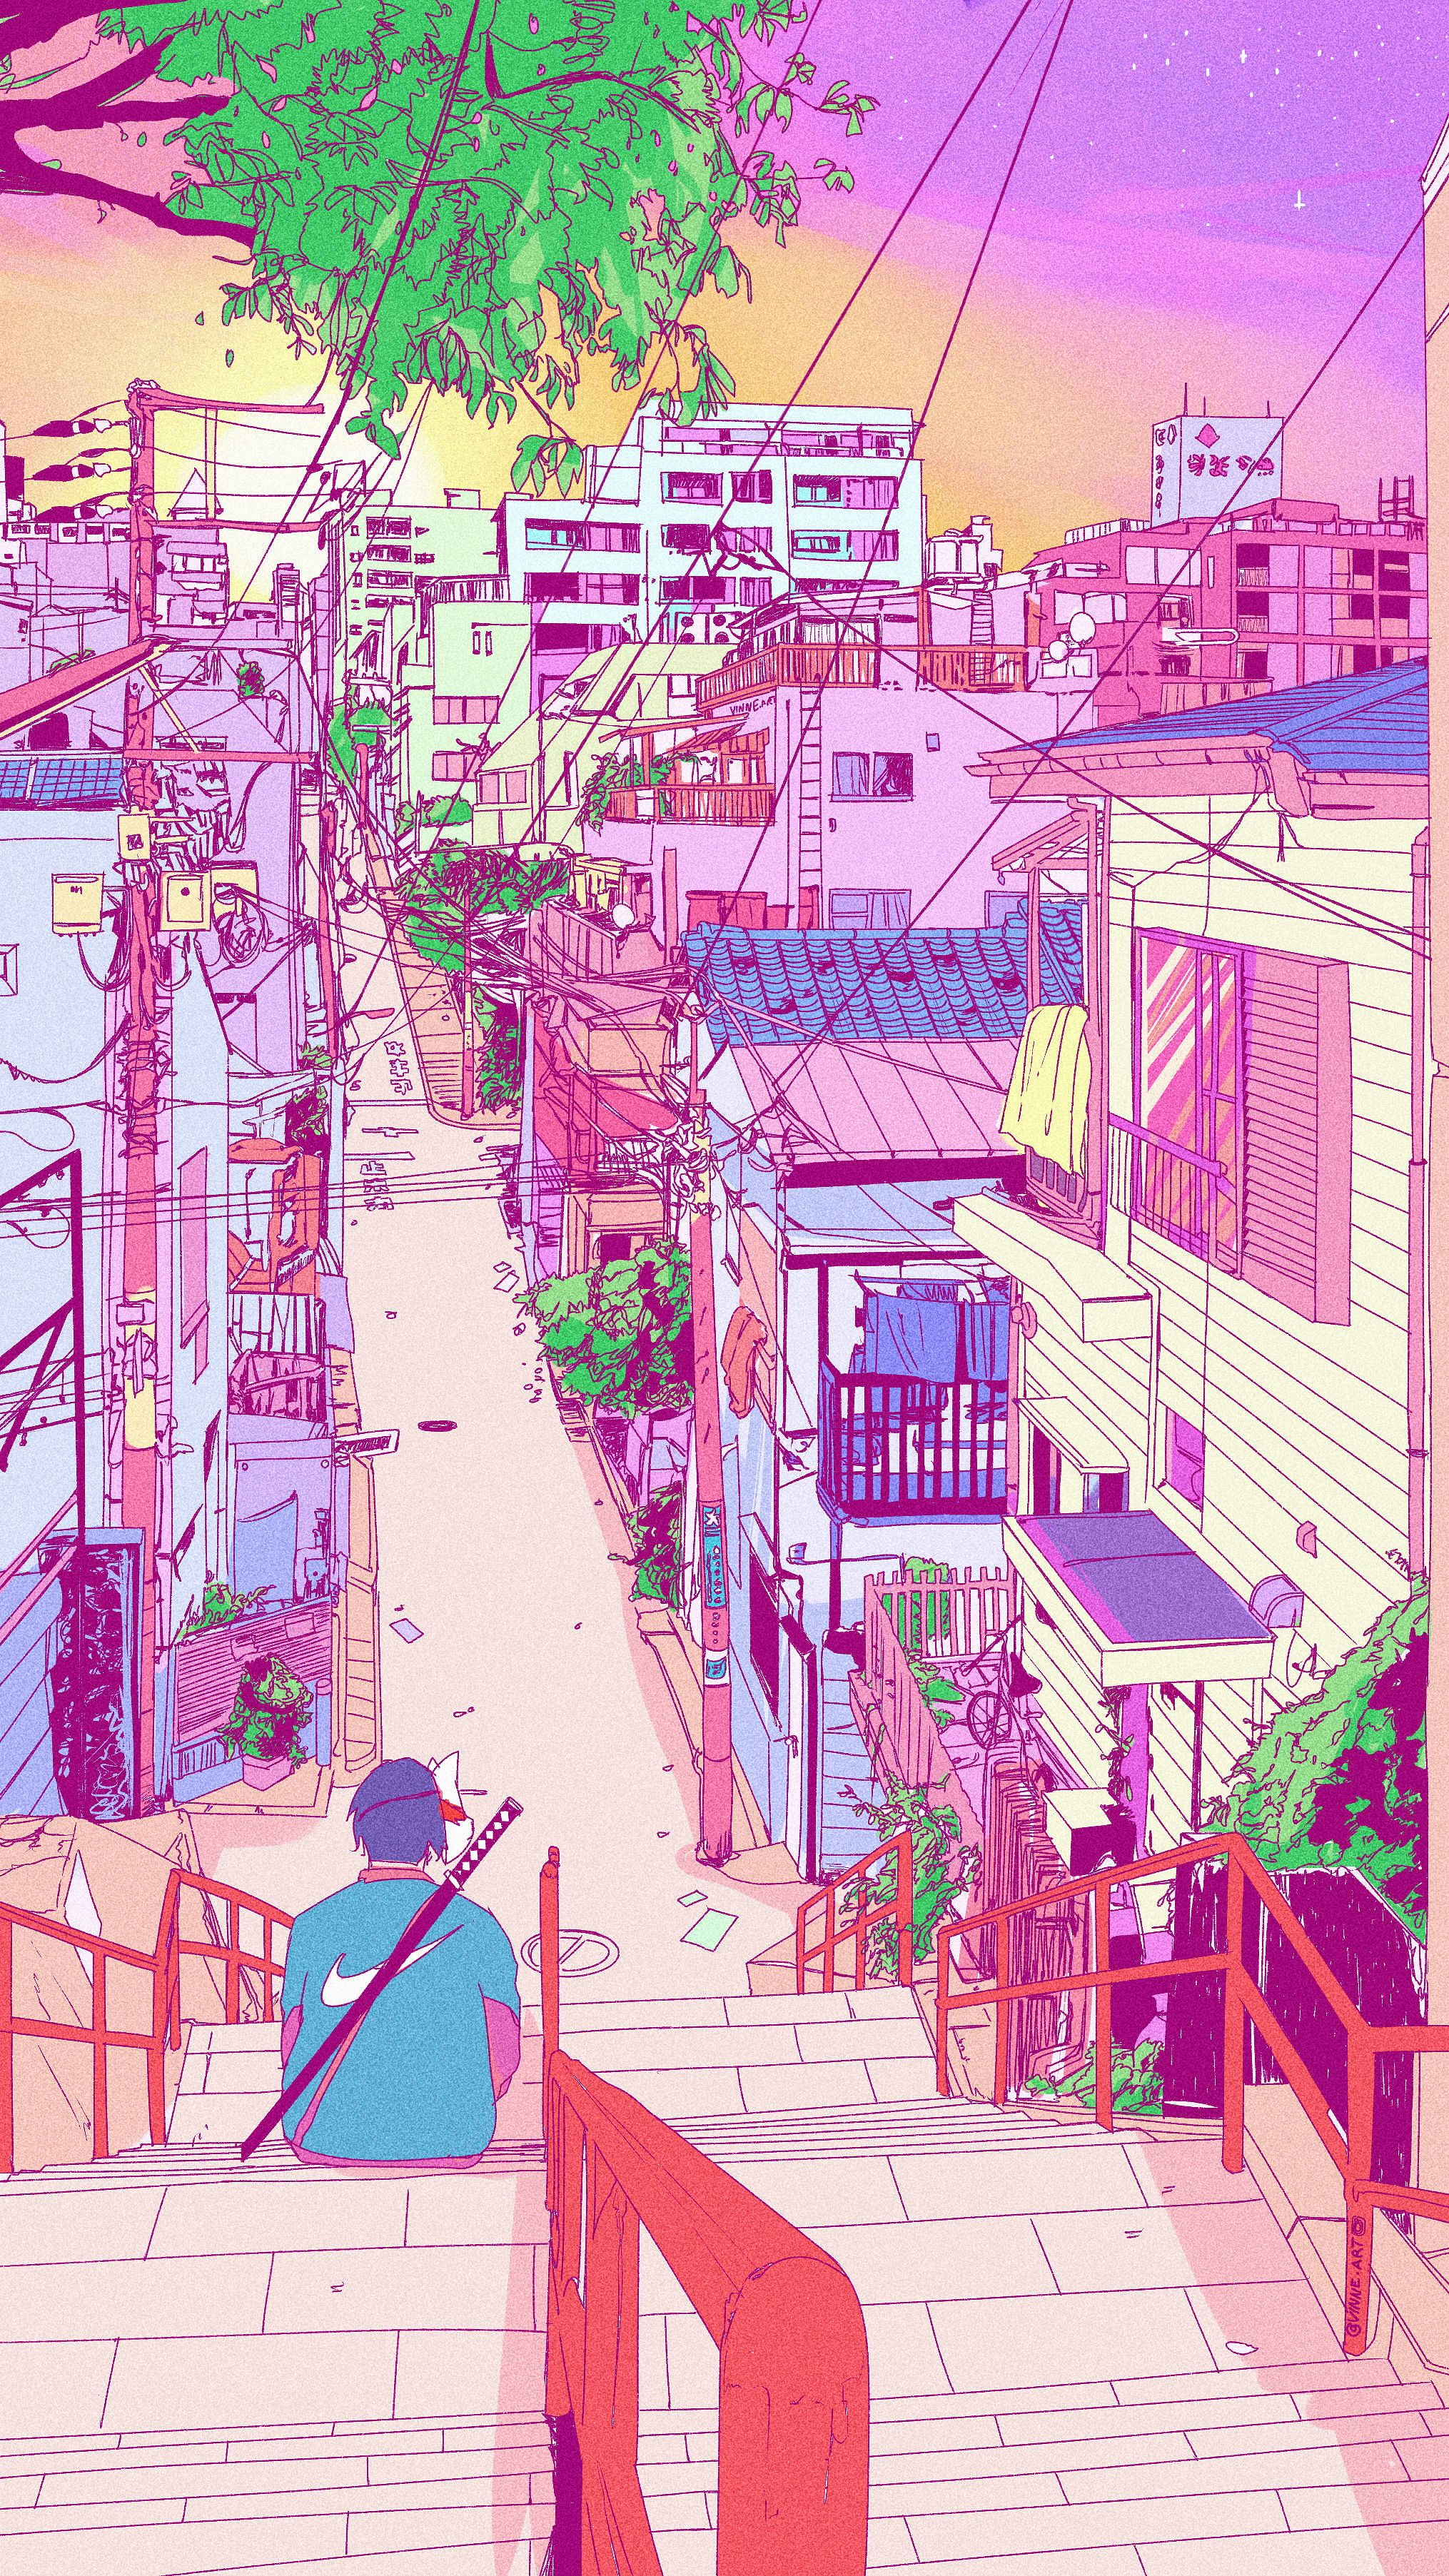 Hd wallpapers and background images. Aesthetic Japan Retro Phone Wallpapers | Wallpaper Album ...